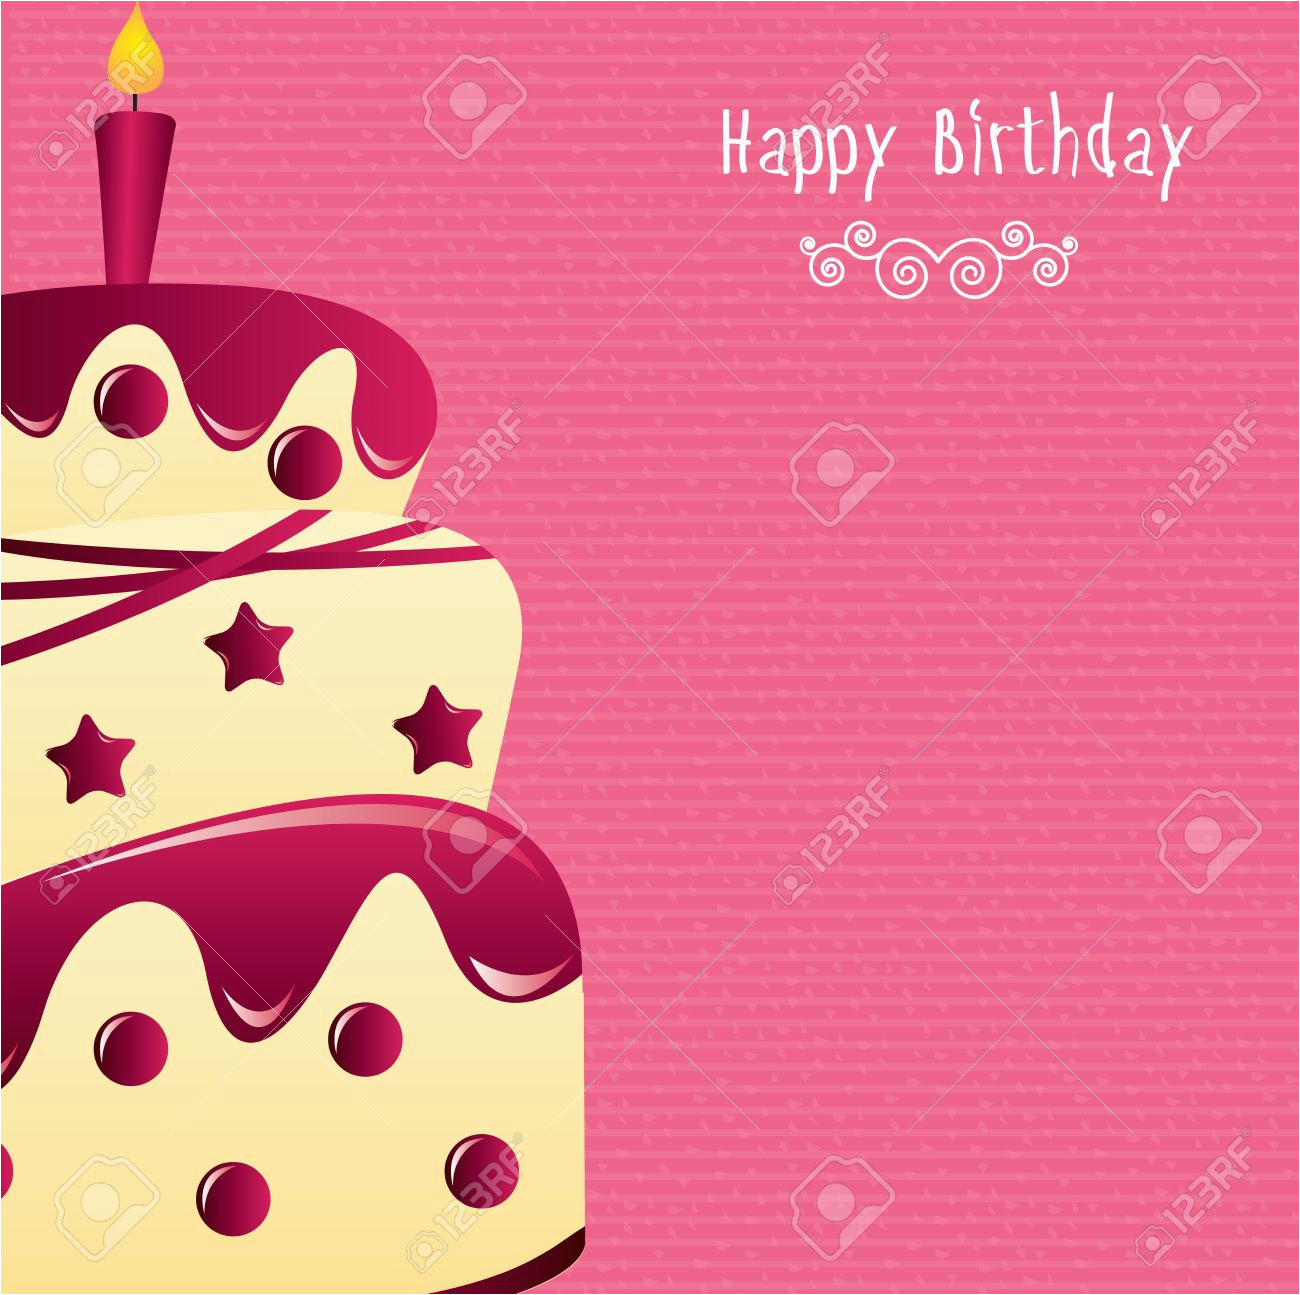 Thoughtful Birthday Cards Beautiful and thoughtful Birthday Wishes to Send to Your